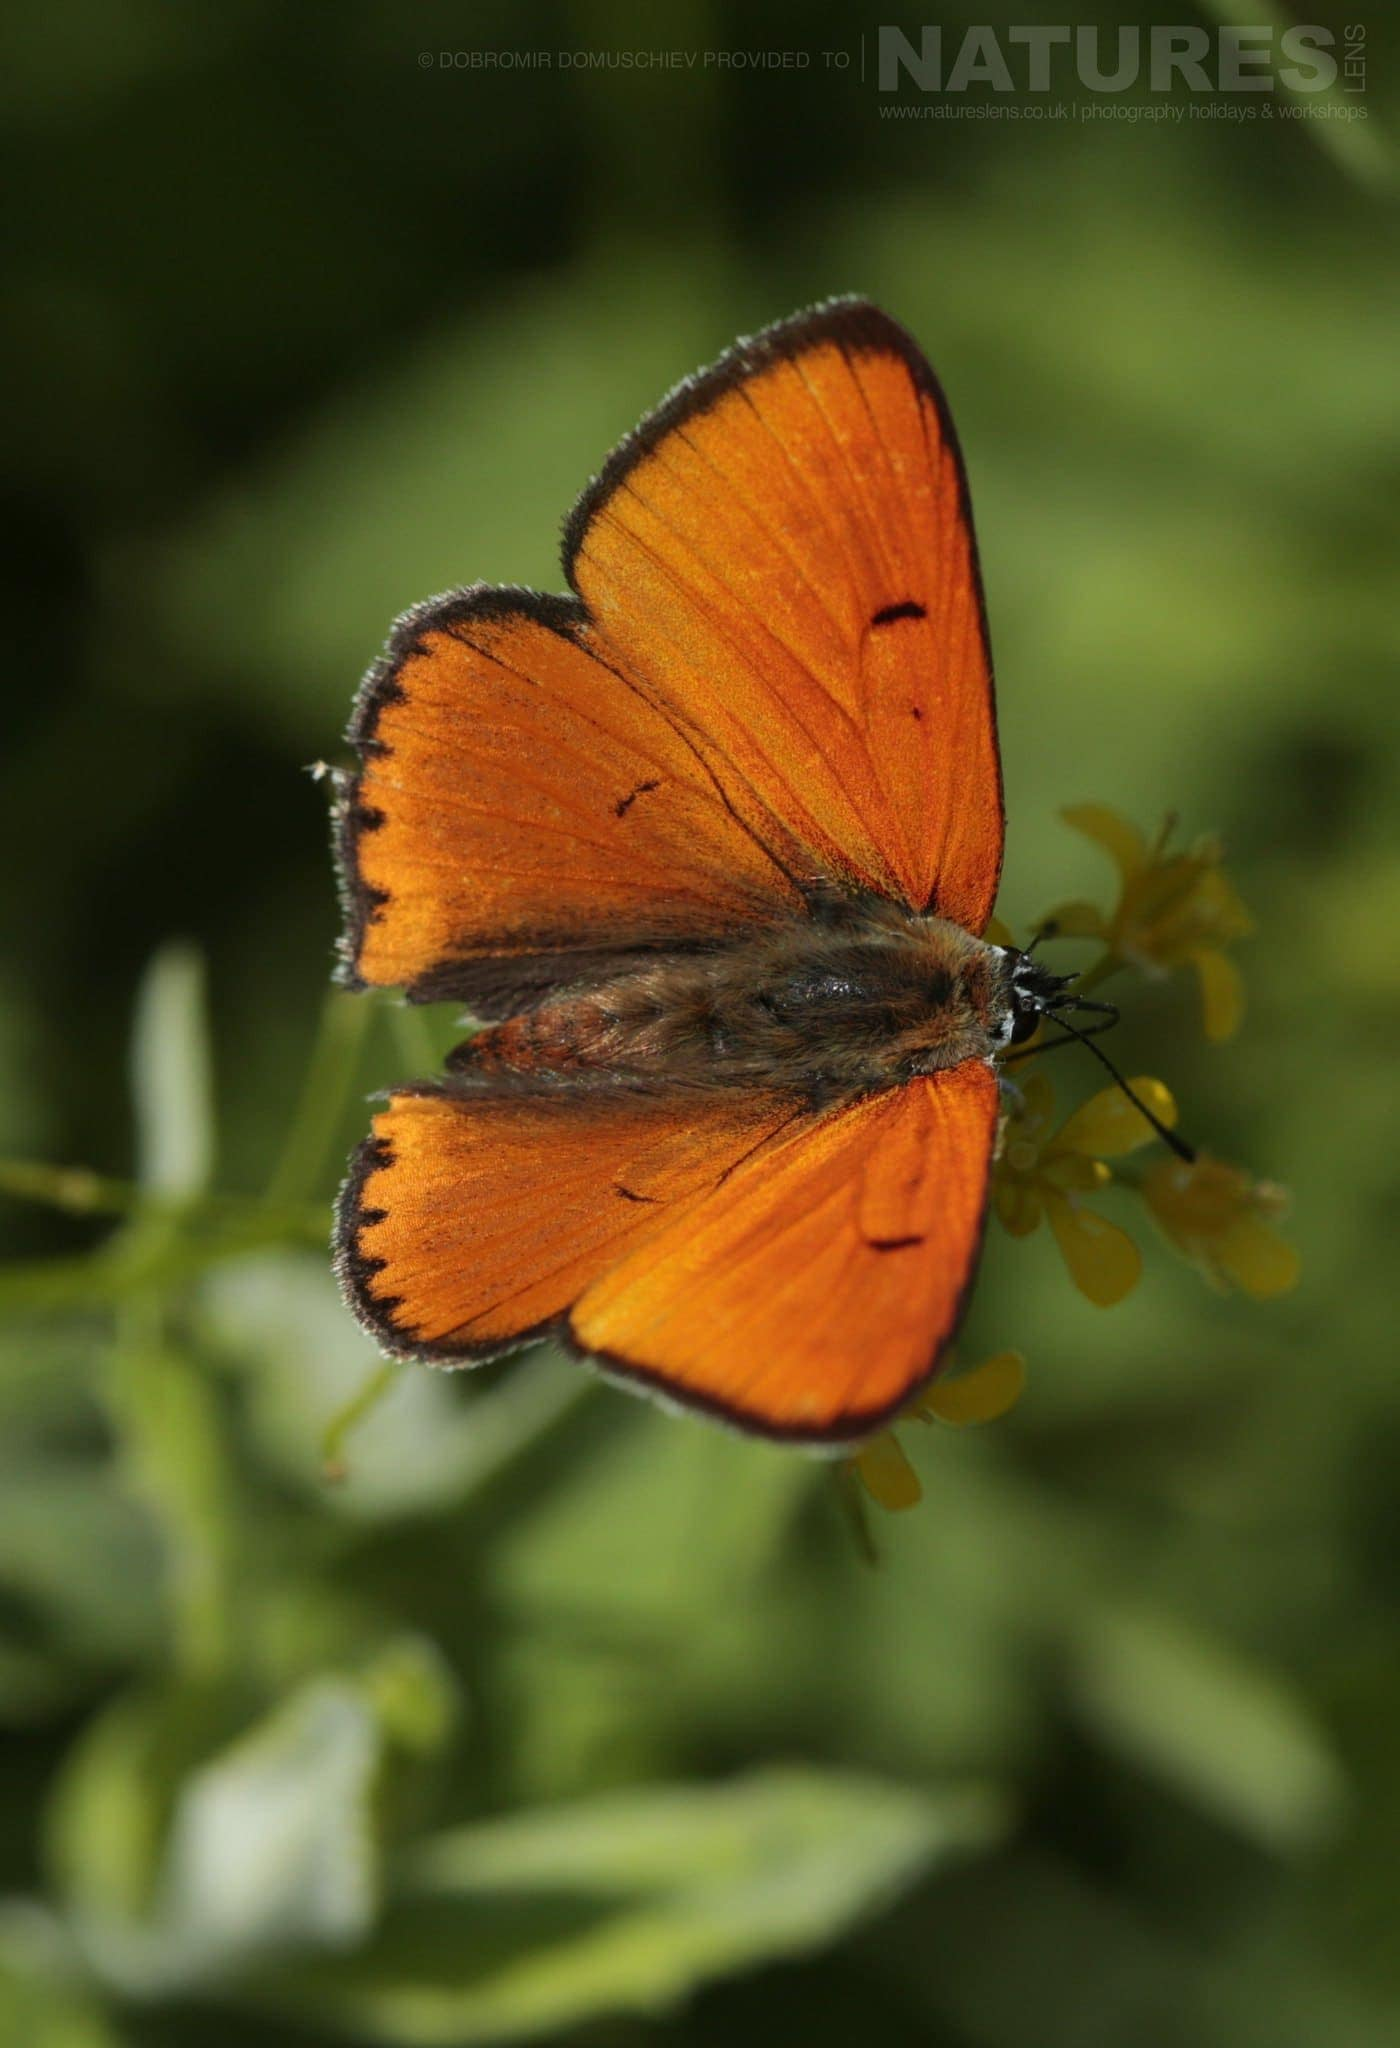 A Large Copper Butterfly Photographed On A Photography Holiday To The Same Regions As The NaturesLens Butterflies & Macro Photography Of Bulgaria Photography Holiday